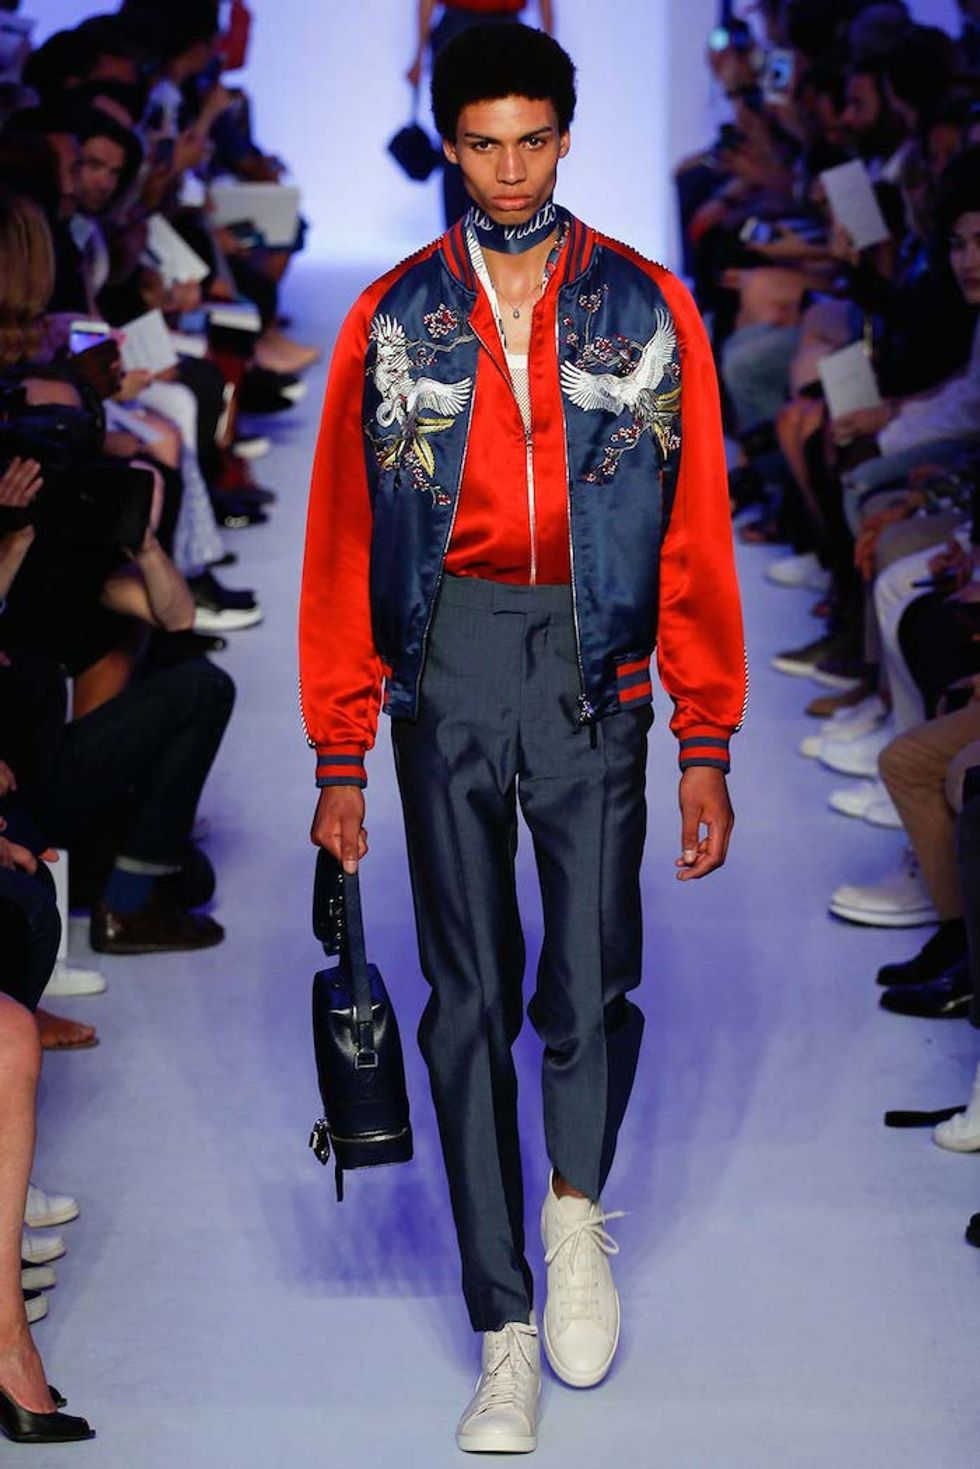 The Diverse Breakout Male Models of the European Men's Collections